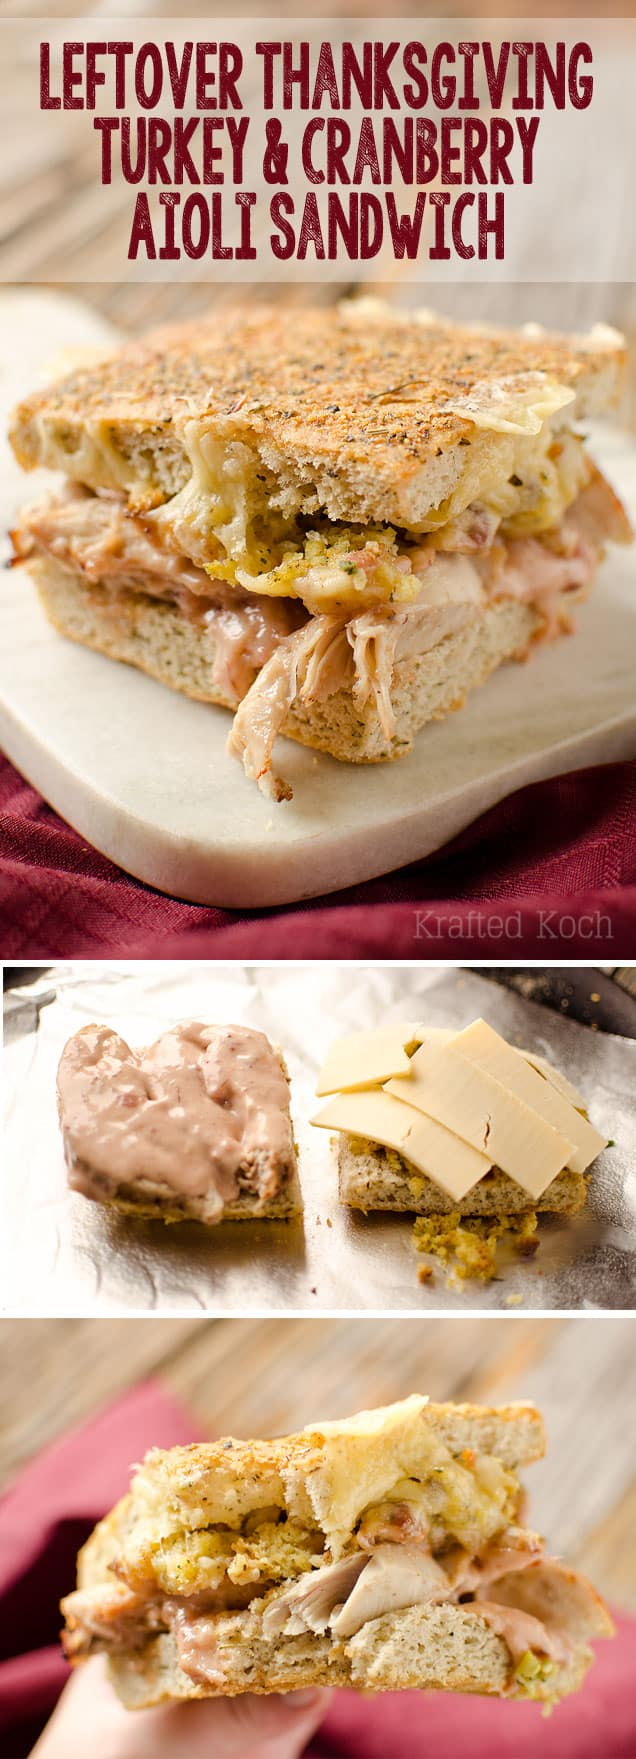 Leftover Thanksgiving Turkey and Cranberry Aioli Sandwich - Krafted Koch - The perfect way to enjoy the best parts of Thanksgiving with this leftover sandwich recipe!